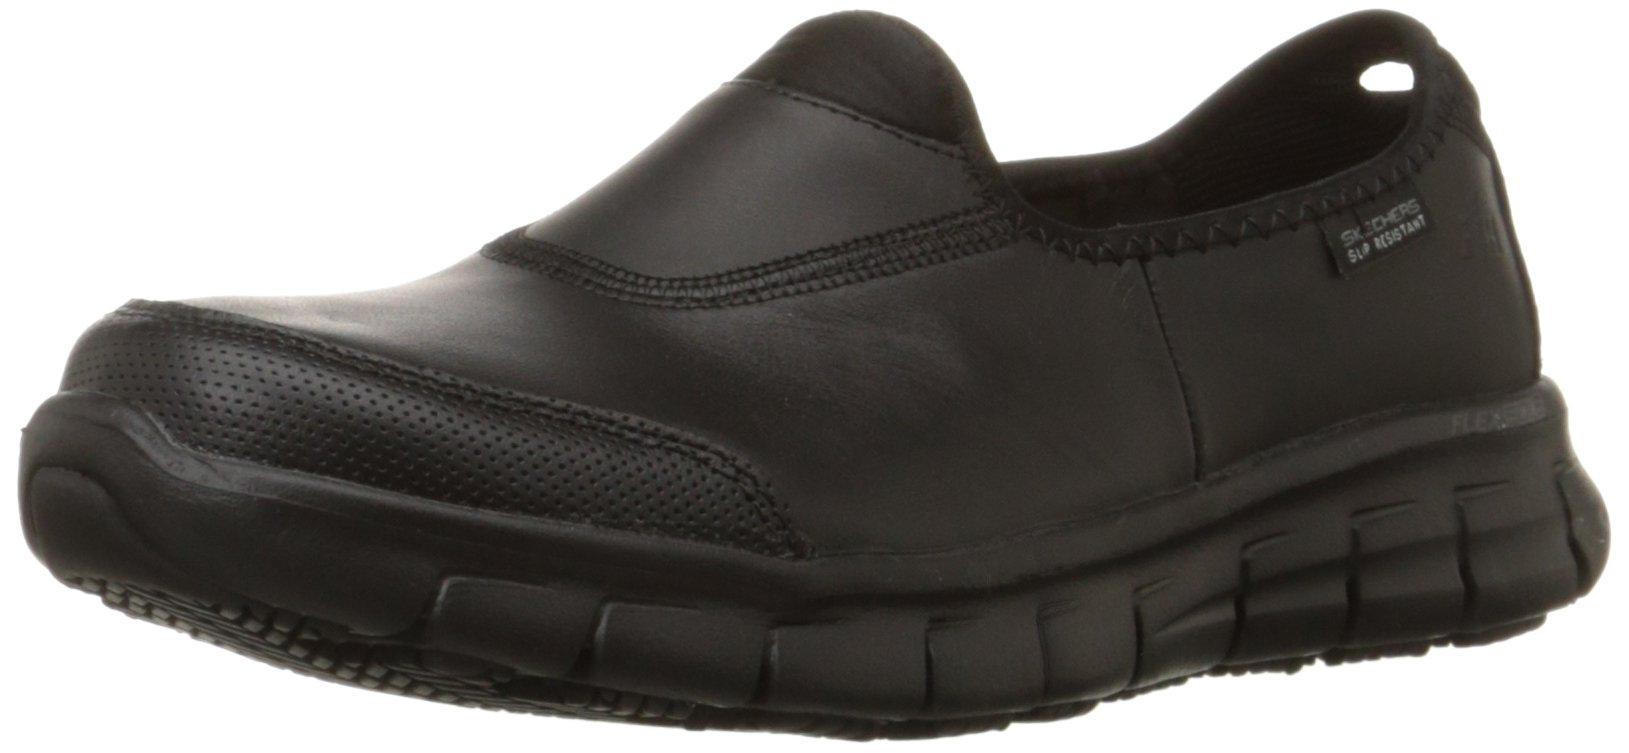 Skechers for Work Women's Sure Track Slip Resistant Shoe, Black, 8.5 M US